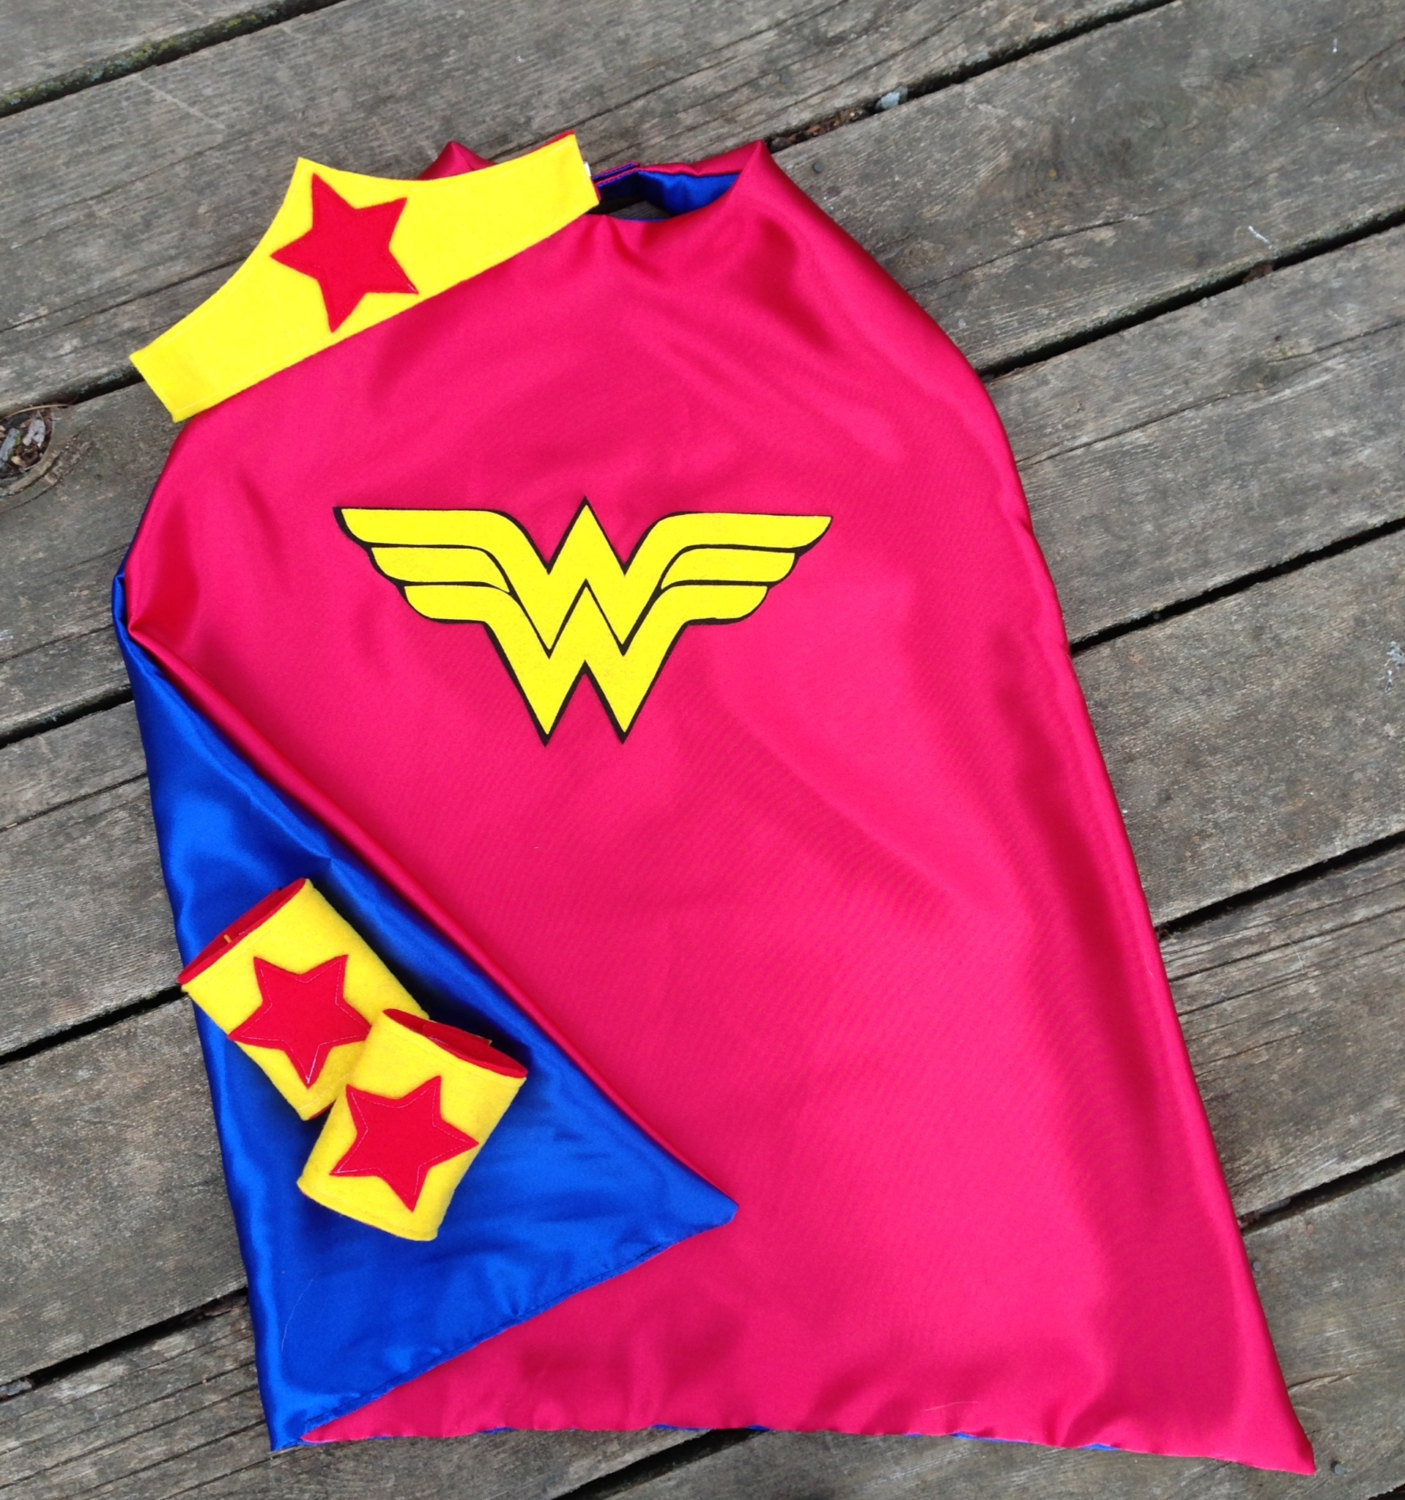 American girl wonder woman outfit-3721